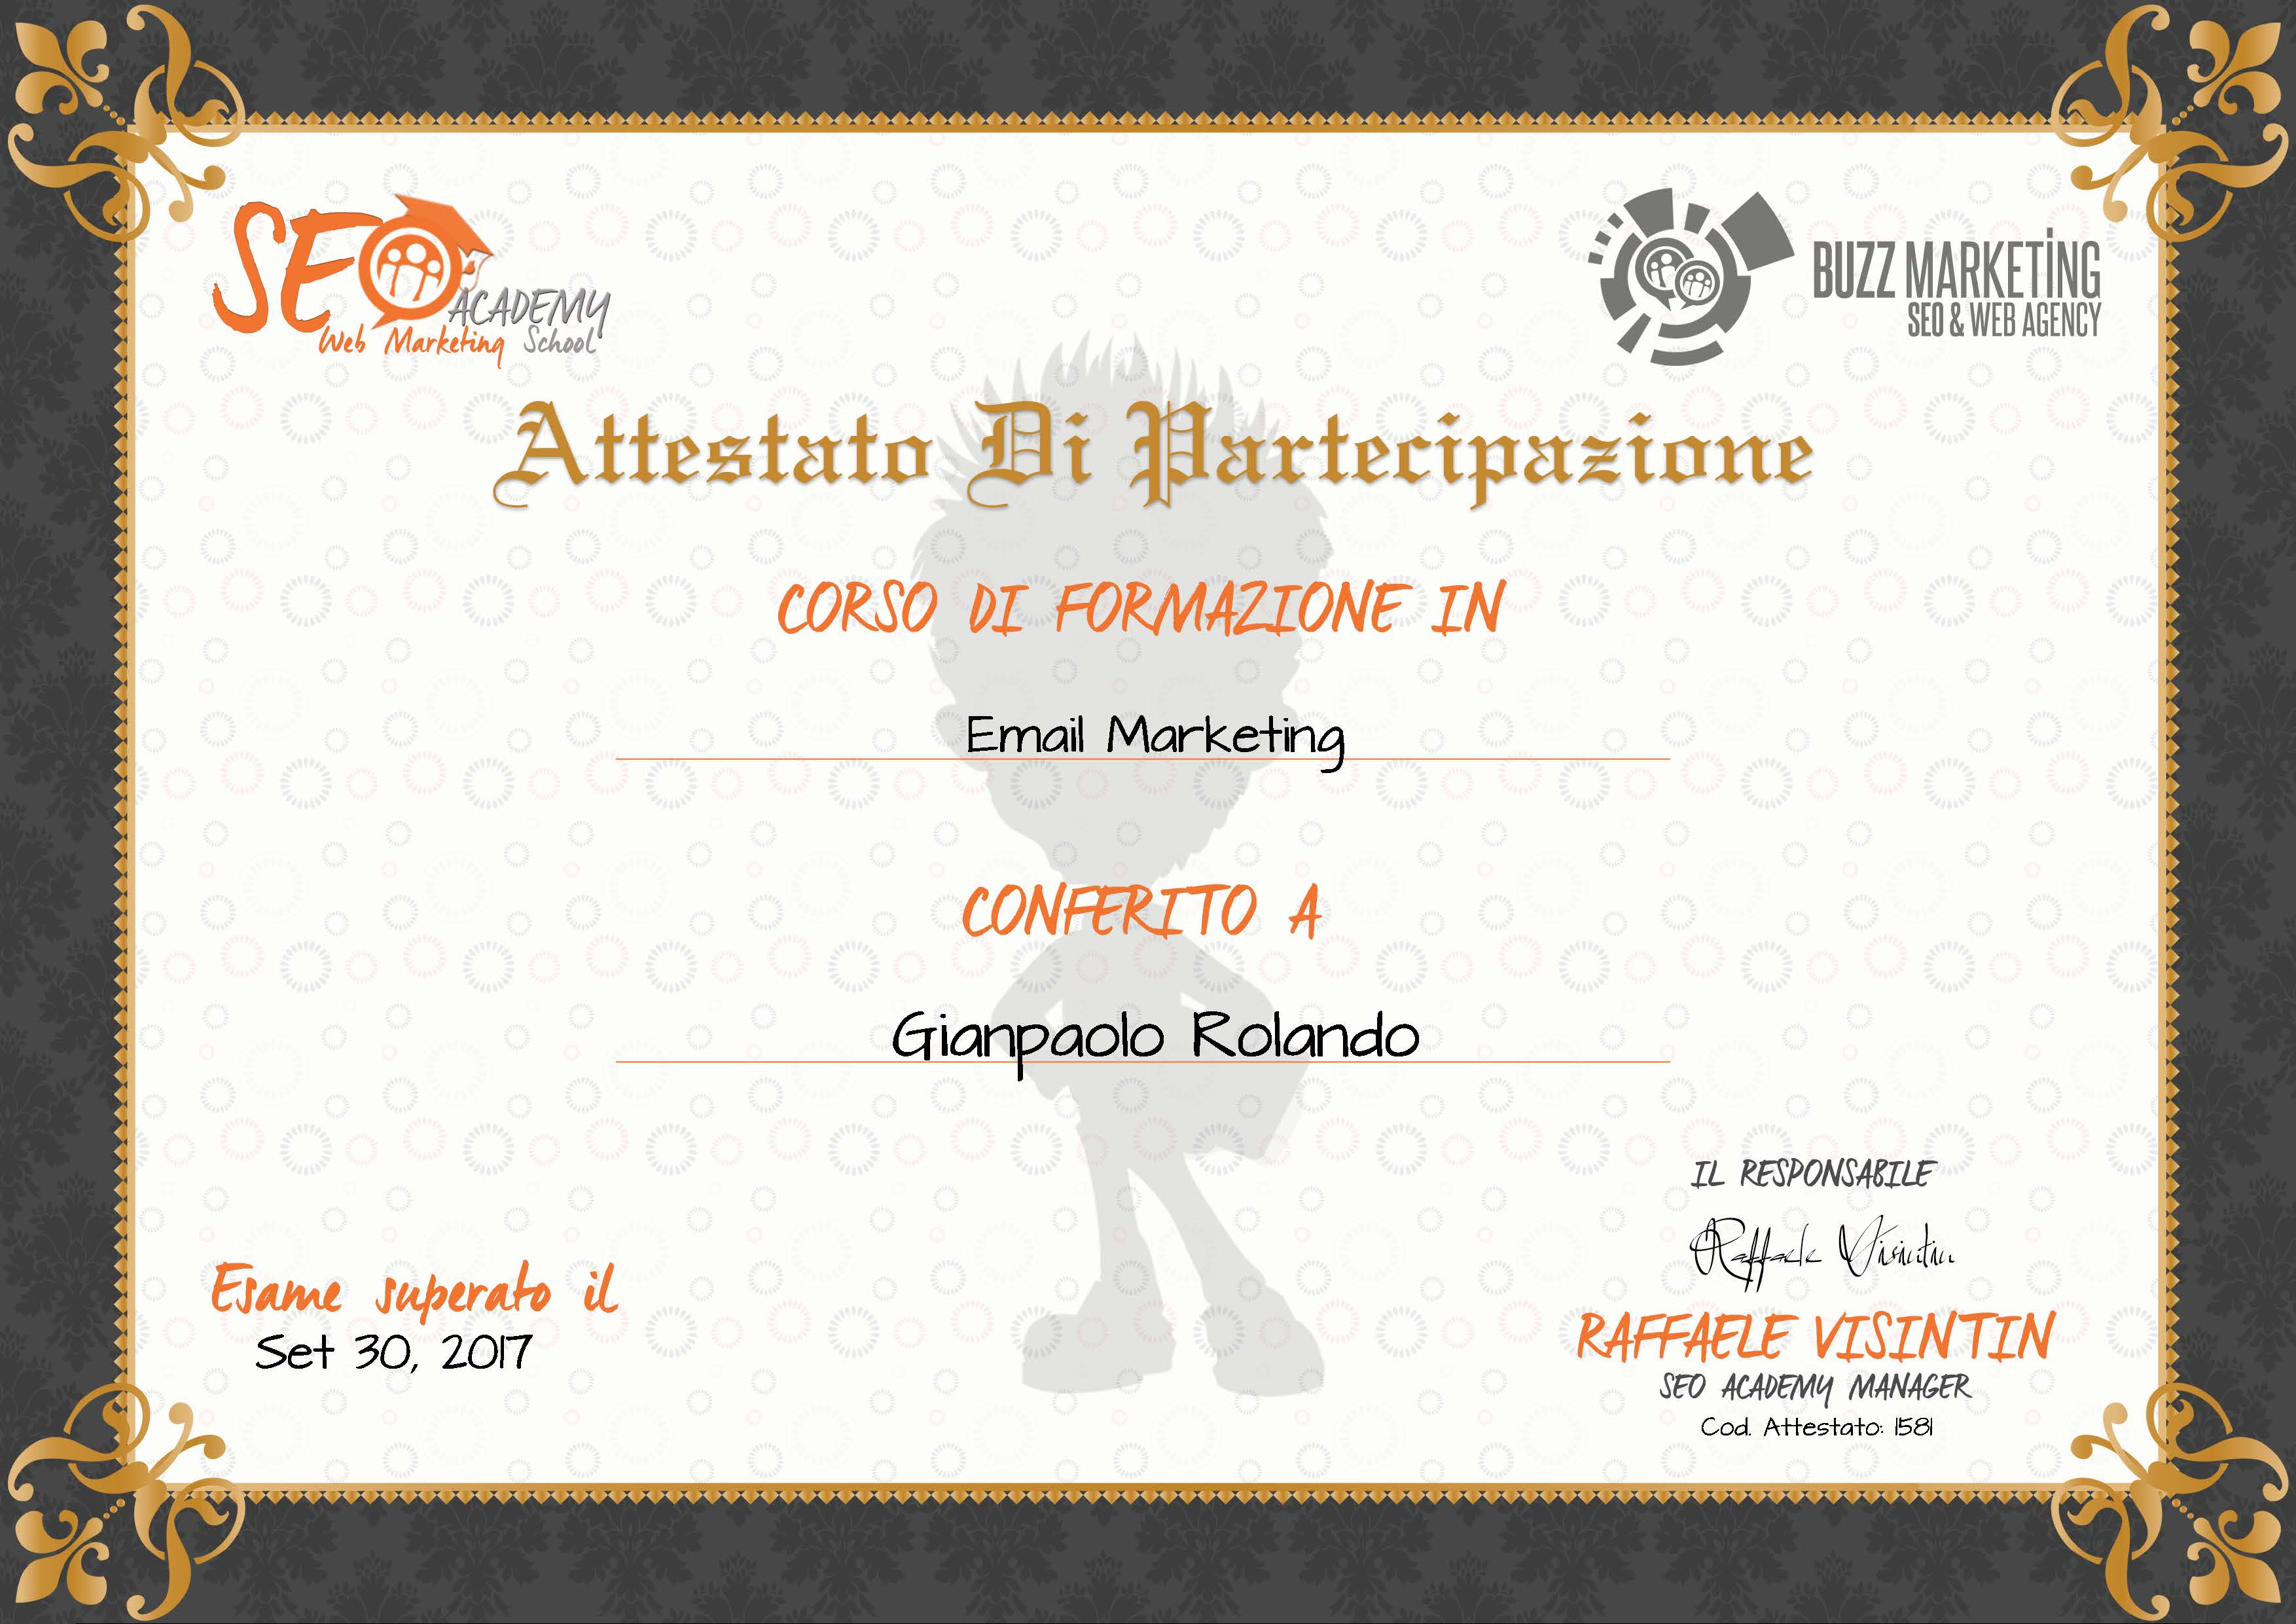 Gianpaolo Rolando Email Marketing